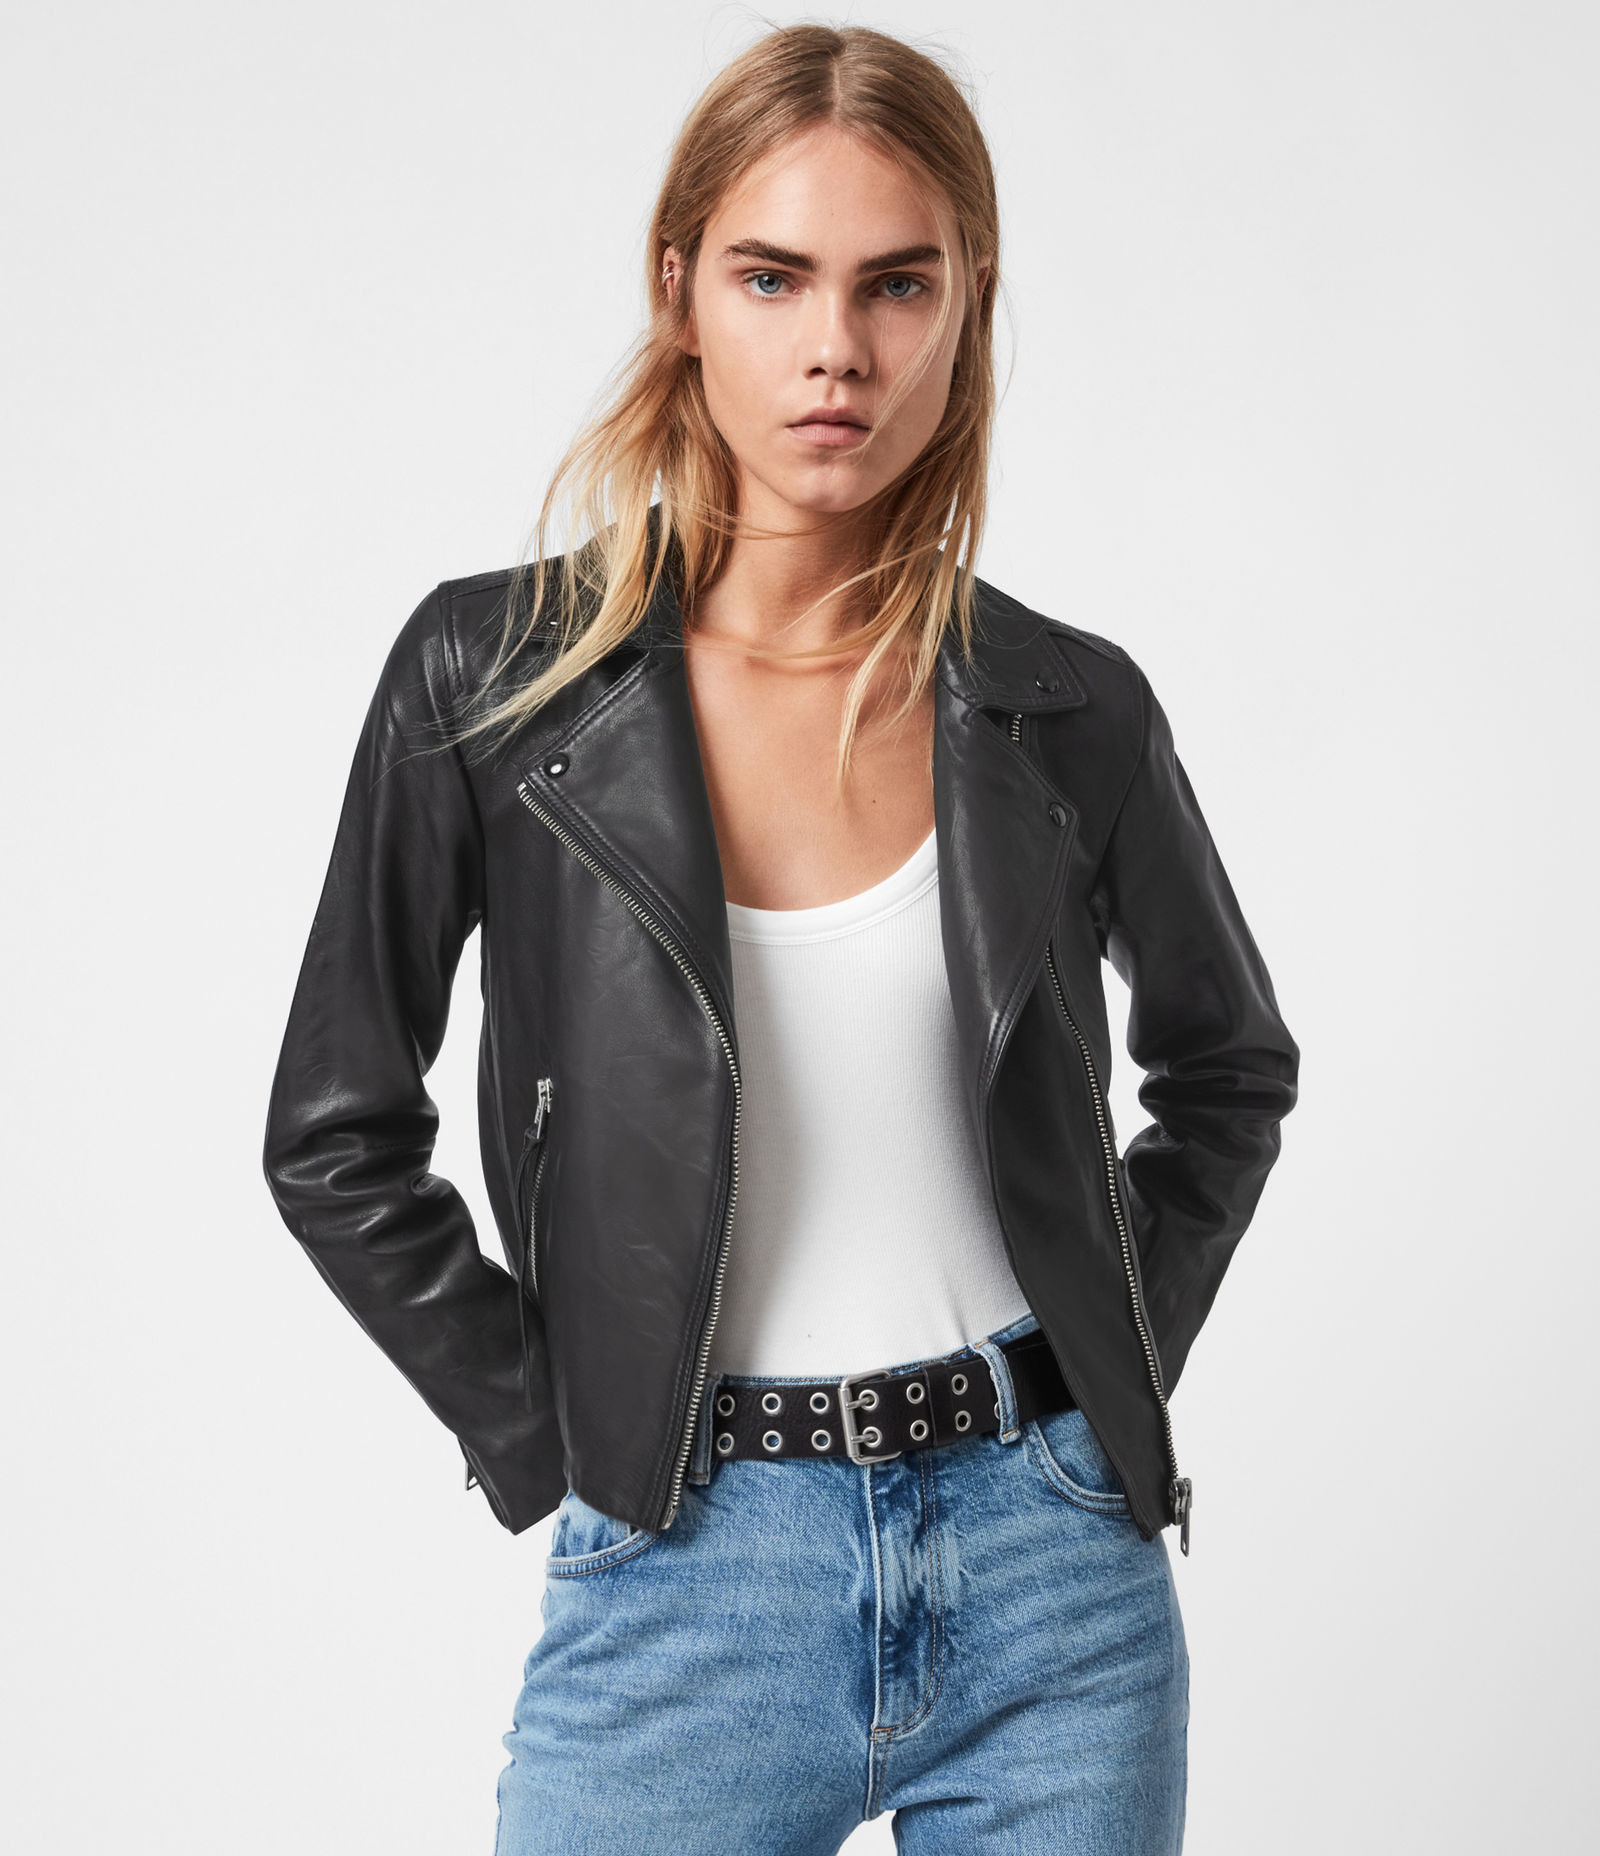 The black jacket with silver hardware